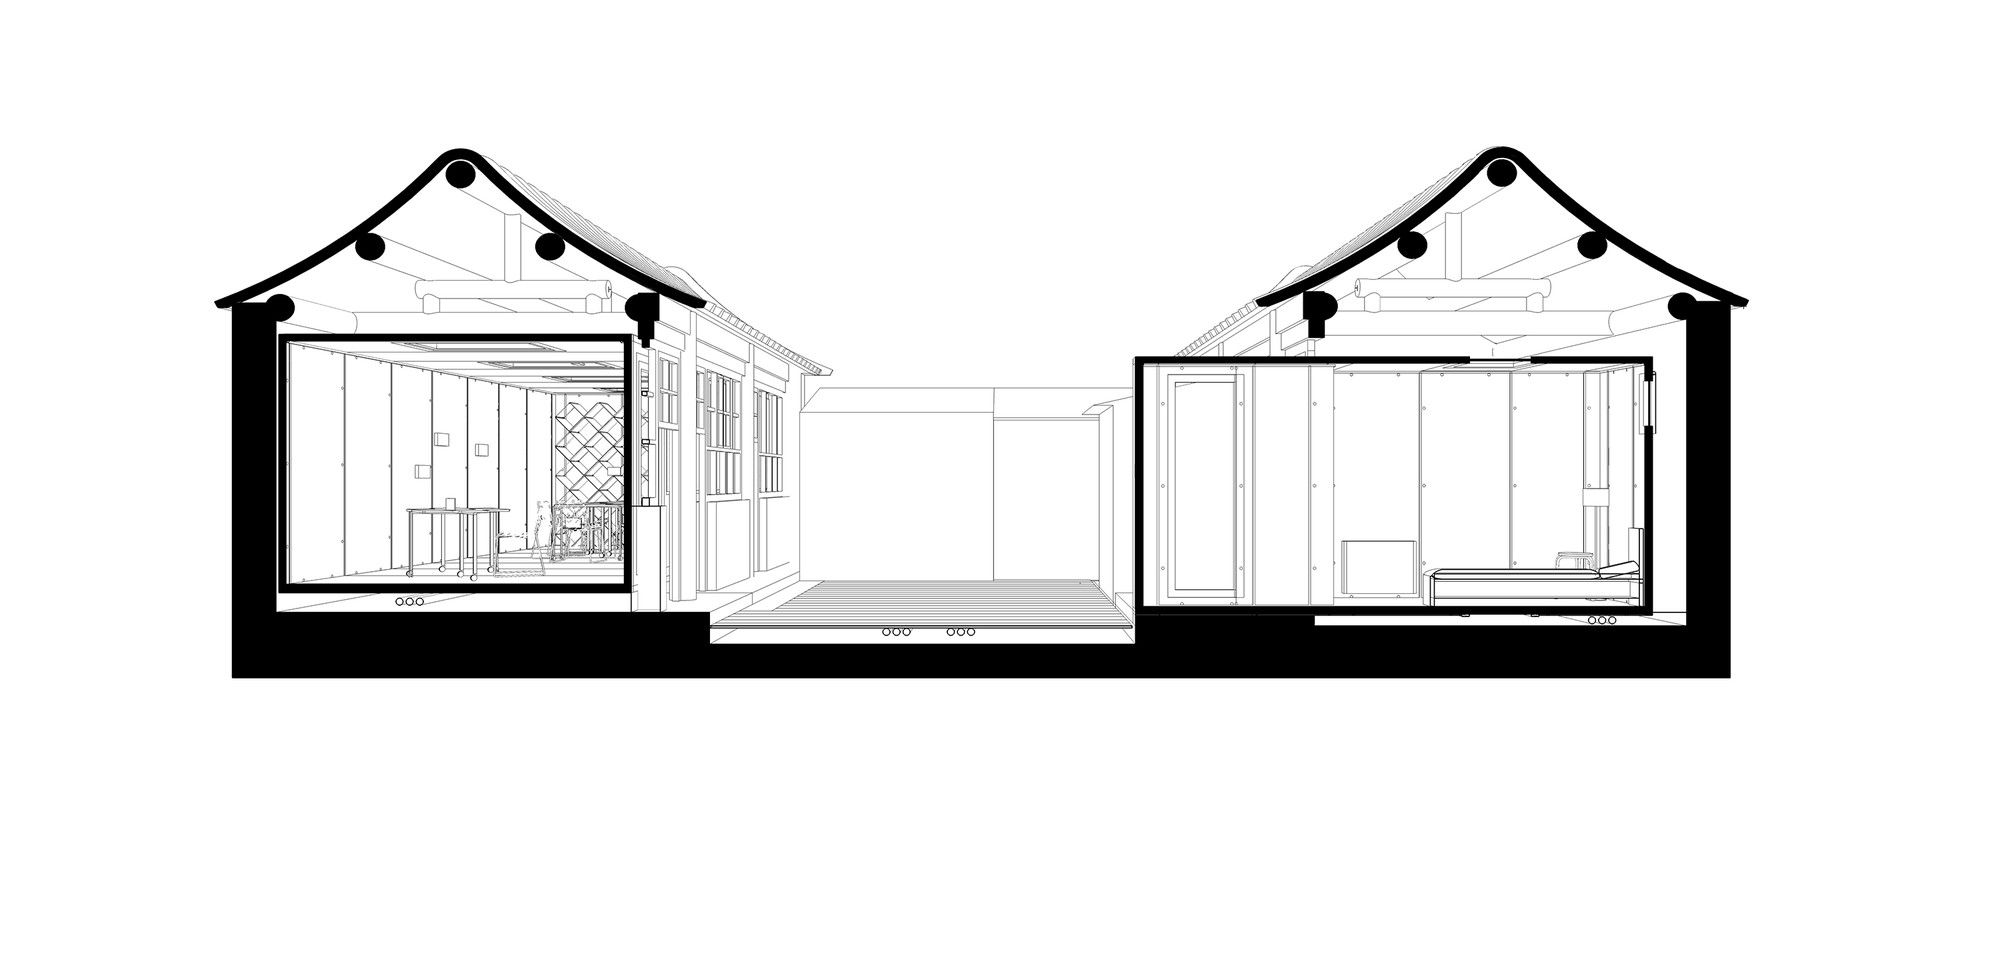 2000x961 Gallery Of The Courtyard House Plugin People's Architecture